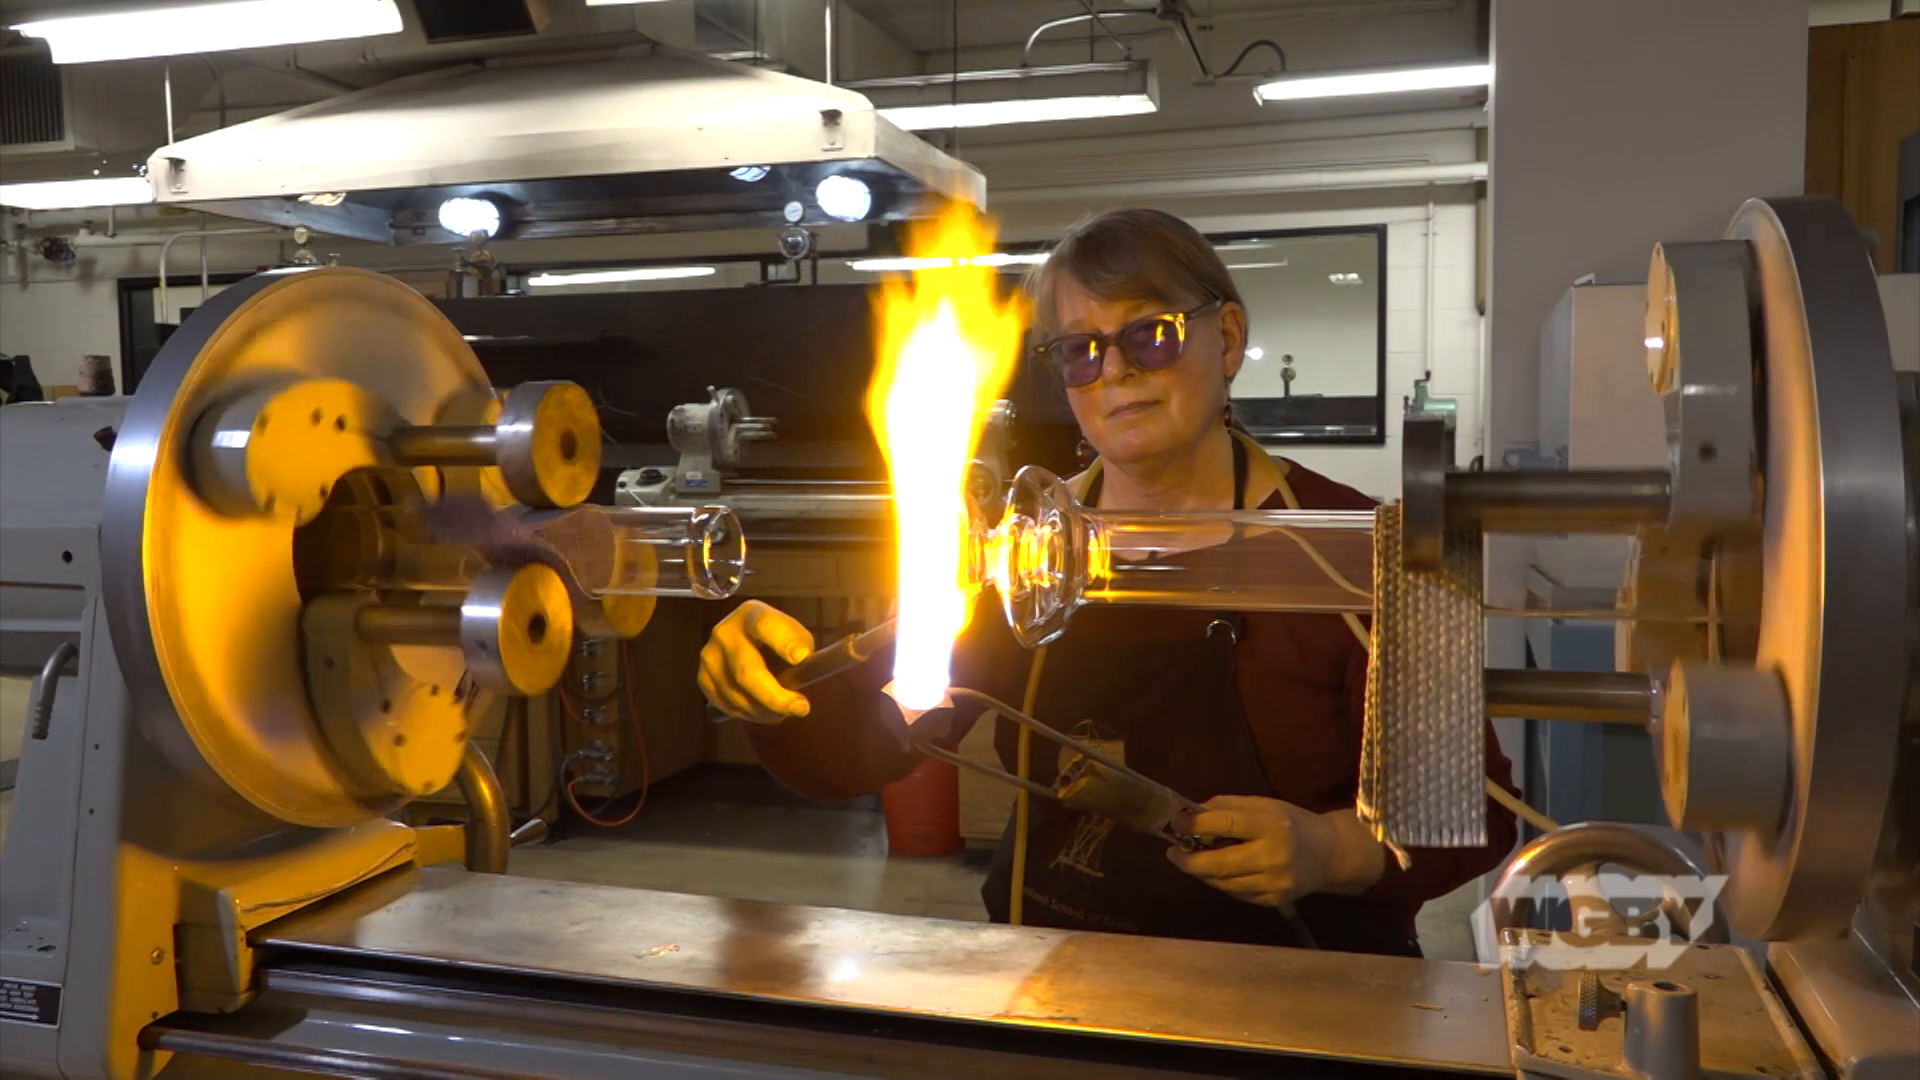 Scientific Glassblowing Lab at UMass Amherst